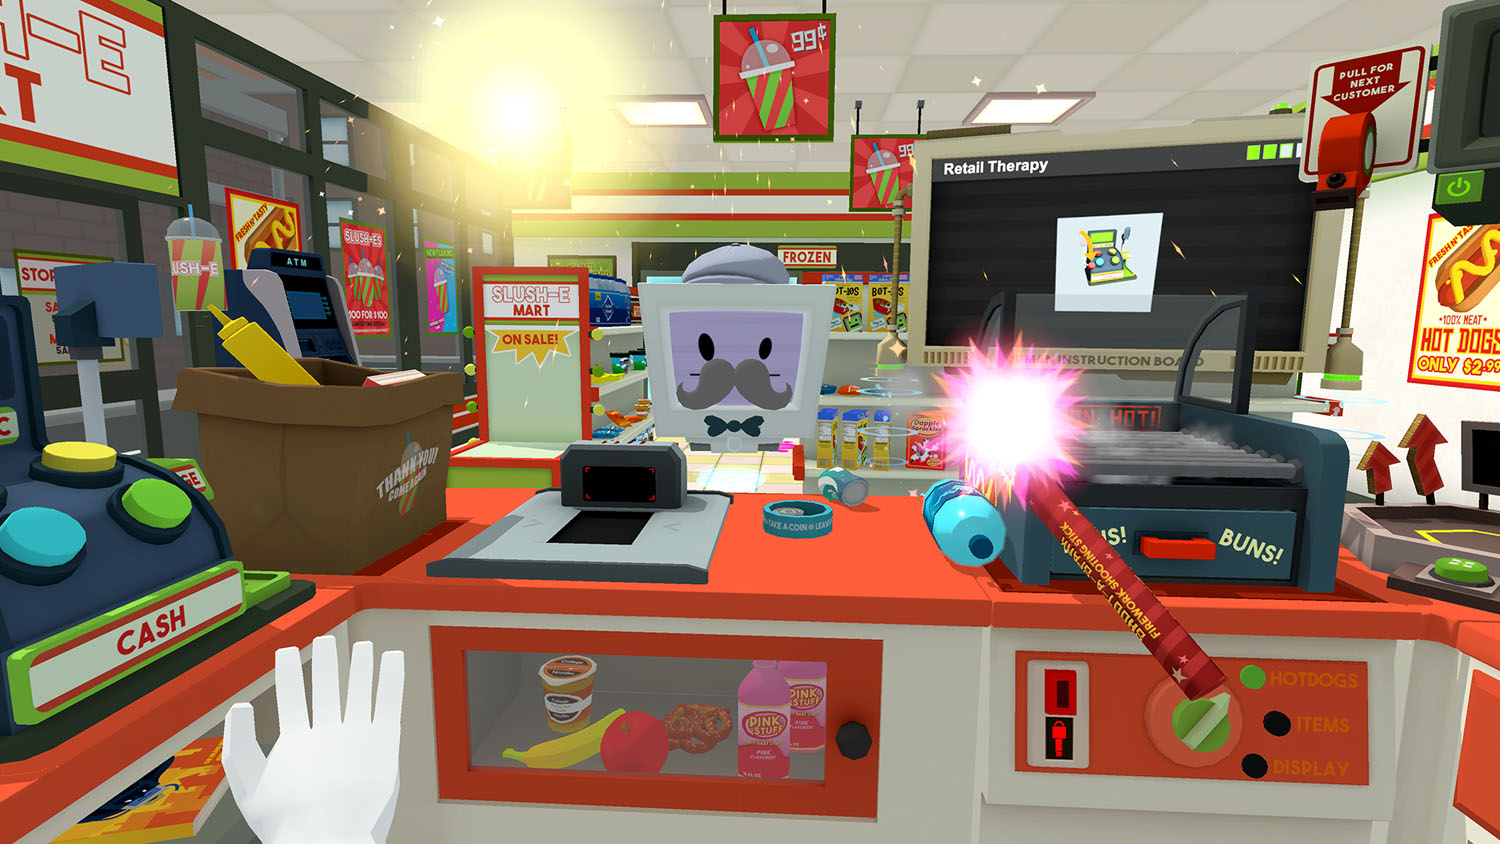 Job Simulator - Convenience Store